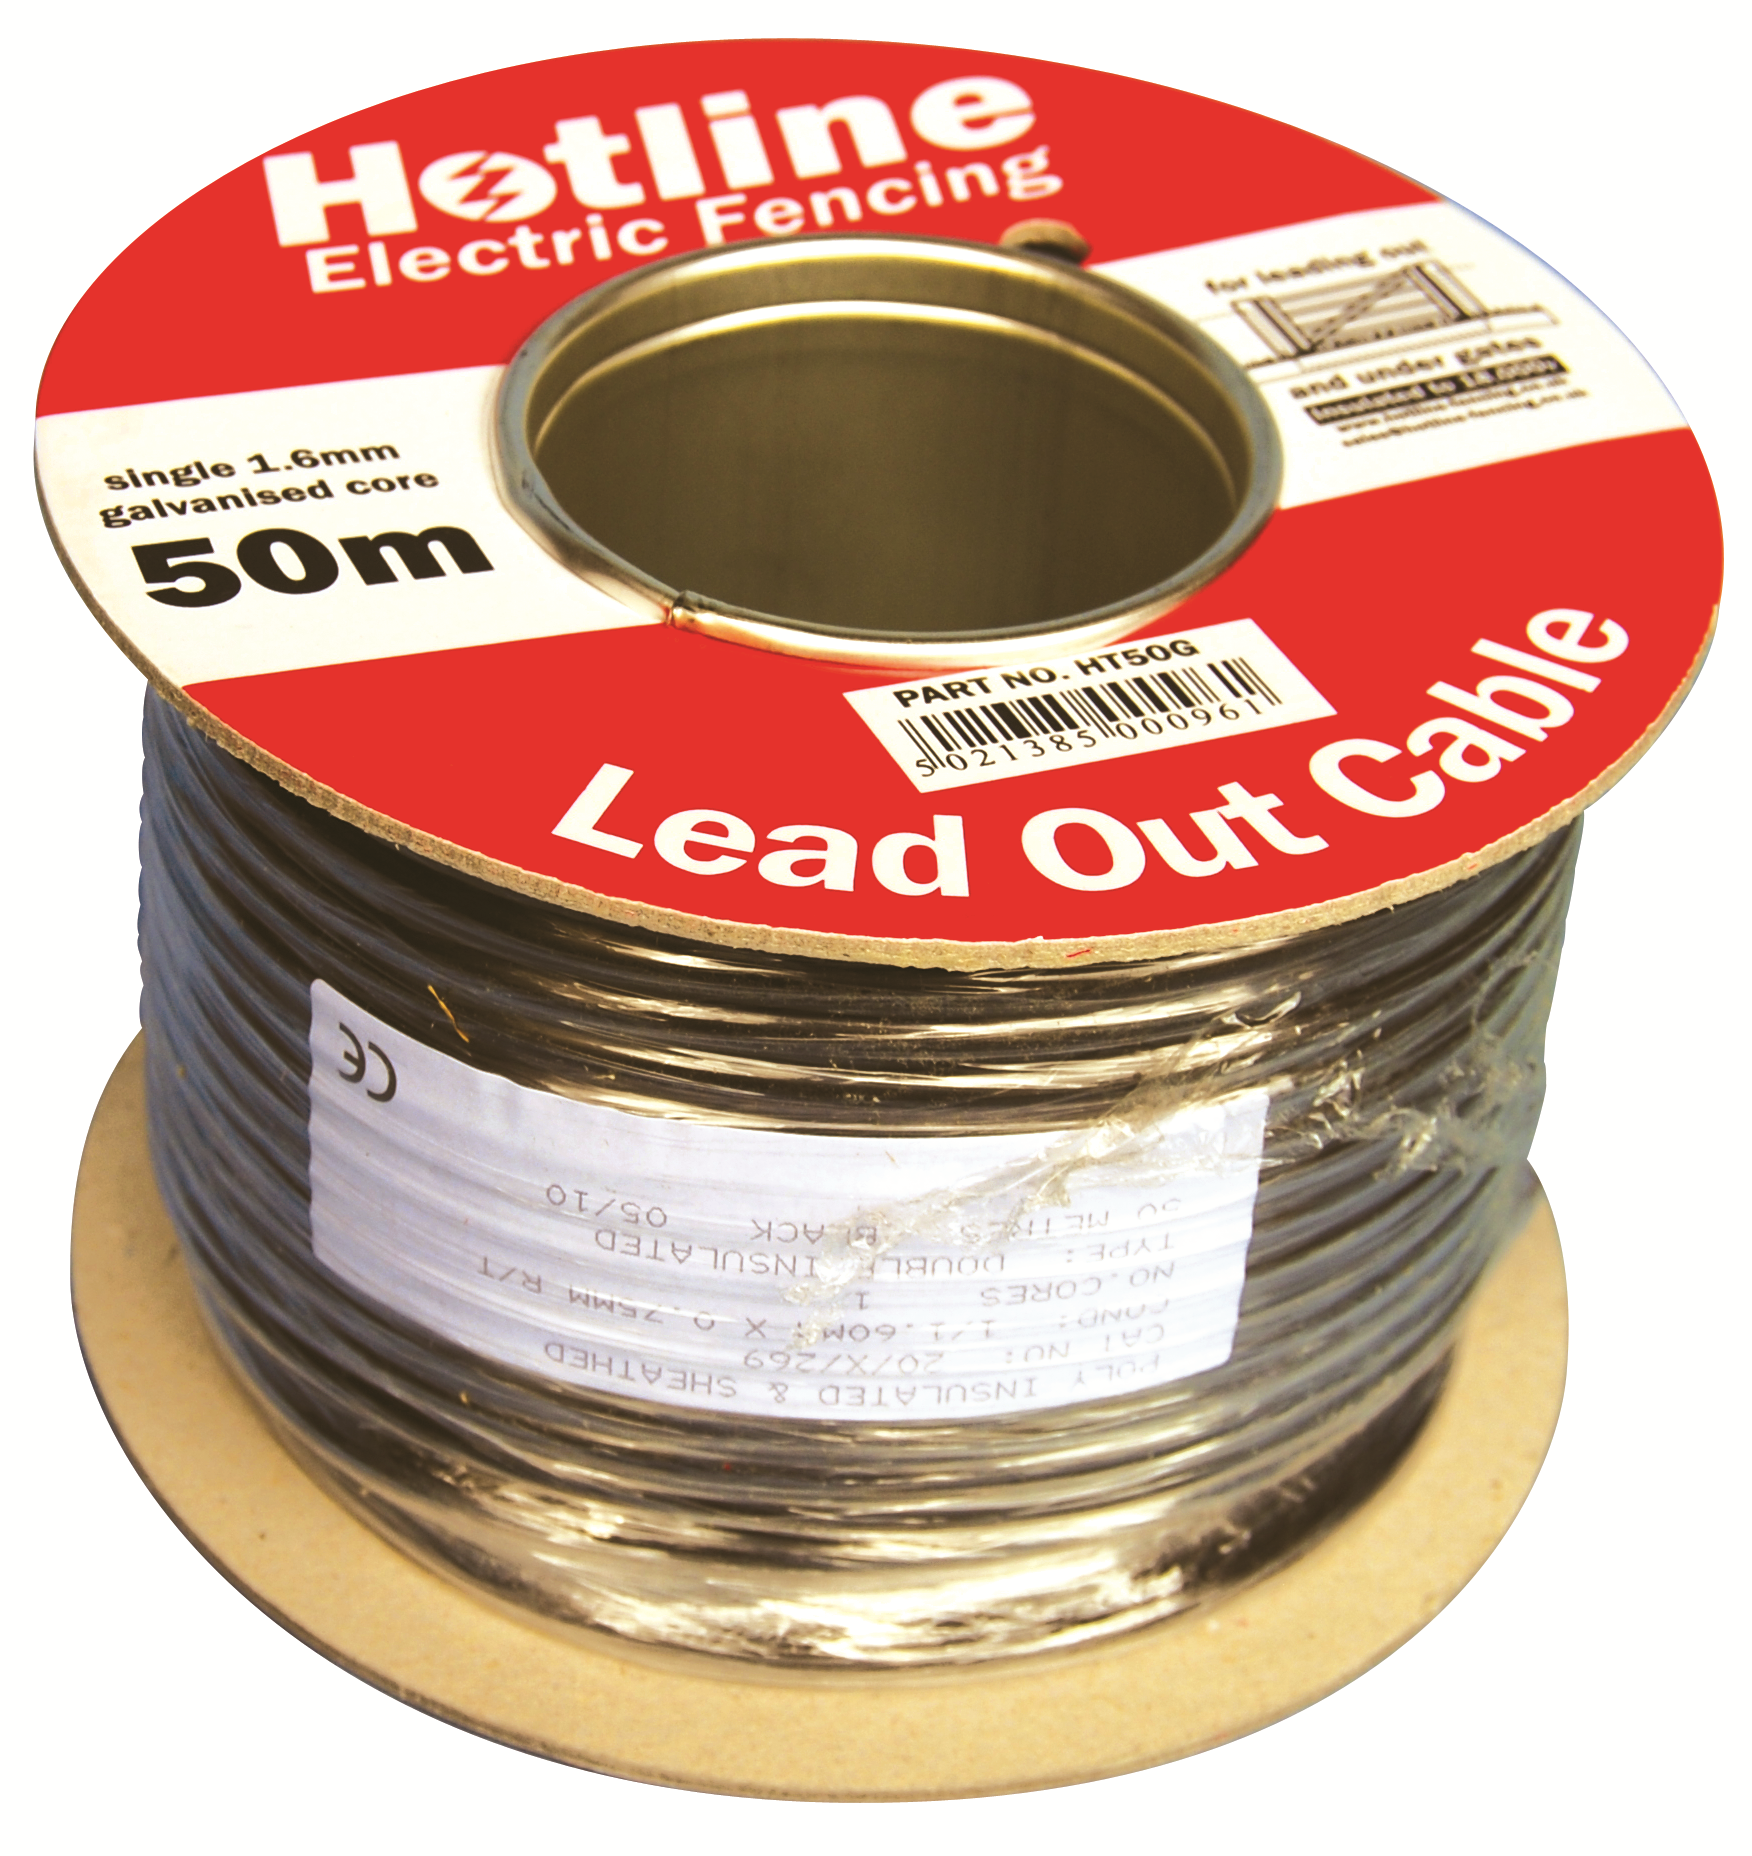 100m Lead Out Cable (HT100/G)